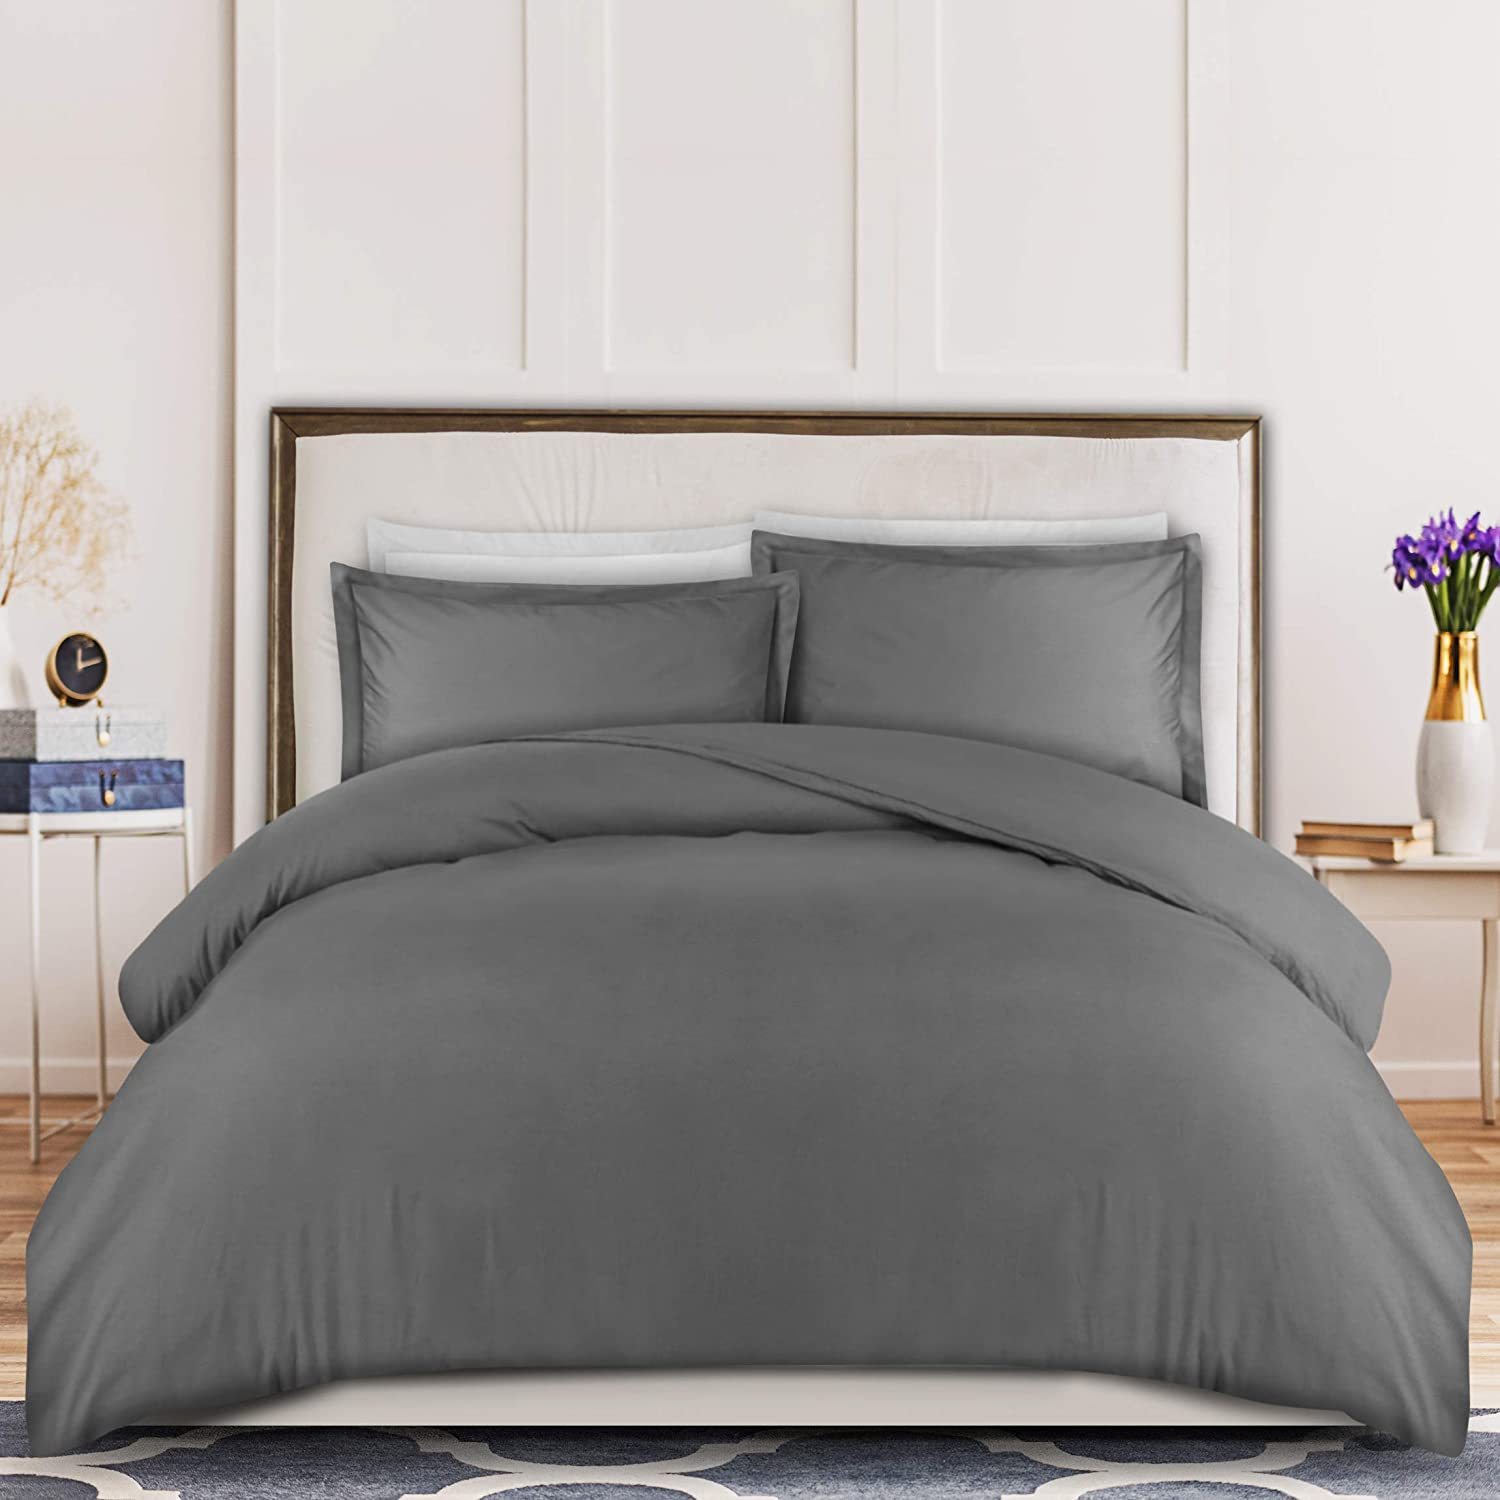 Utopia Bedding 3-Piece Duvet Cover Set – 1 Duvet Cover with 2 Pillow Shams - Comforter Cover with Zipper Closure - Soft Brushed Microfiber Fabric - Shrinkage and Fade Resistant - Easy Care (Queen, Grey)